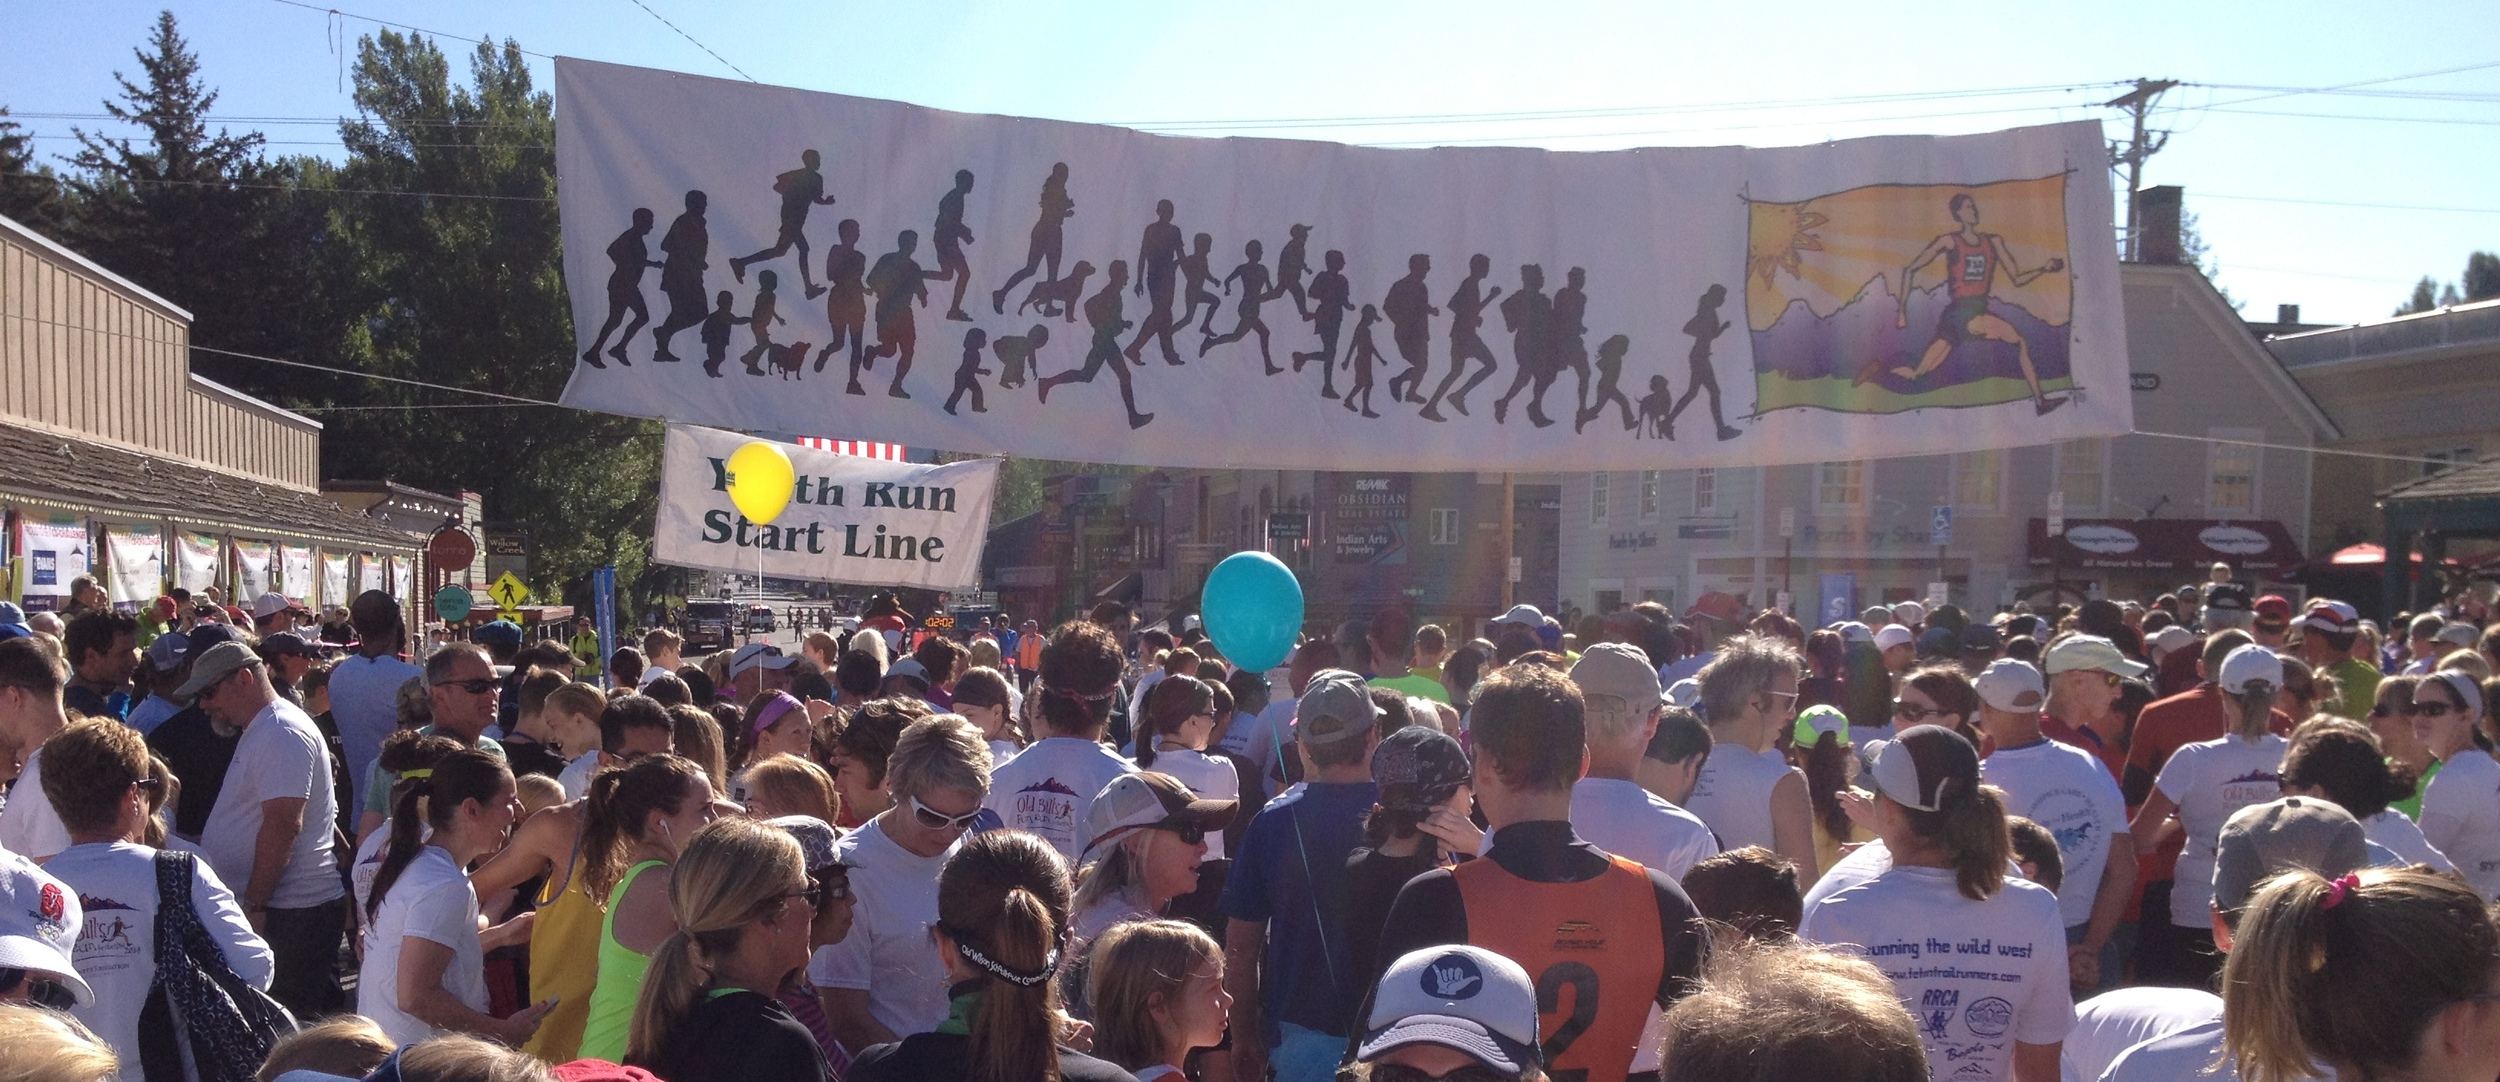 Old Bill's Fun Run, Jackson, WY